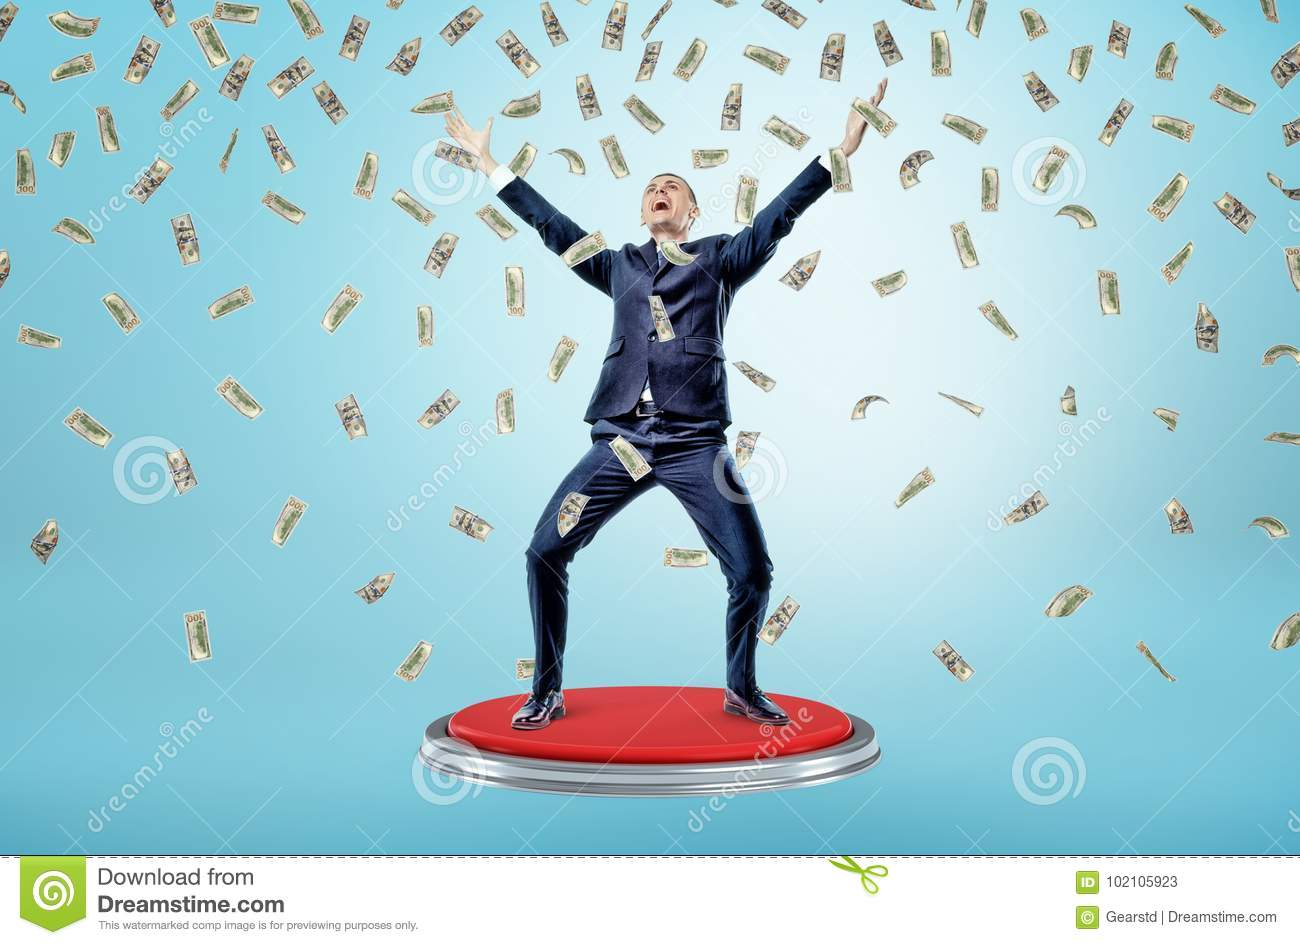 A happy and victorious businessman stands on a giant red button under many falling 100 dollar bills.